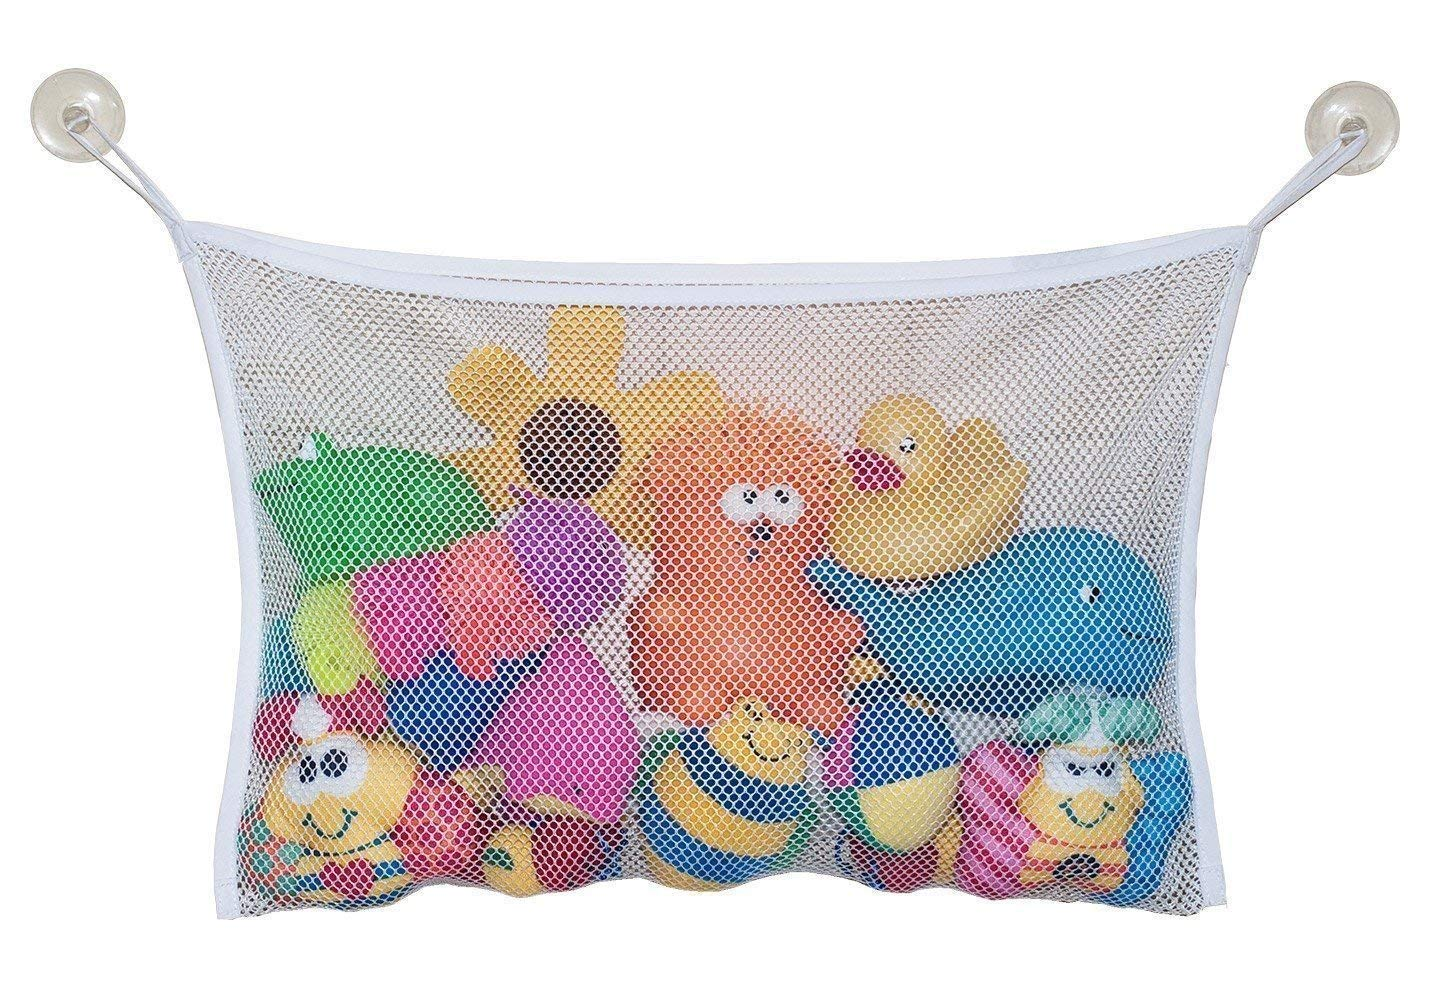 LoveBuy Bath Toy Organizer Mesh Net Bag, Perfect for Bathtub Toys & Bathroom Storage with Suction Hooks, Multi-Use Organizer Bags for Kids, Toddlers & Baby (White, 17.7113.77 Inch)